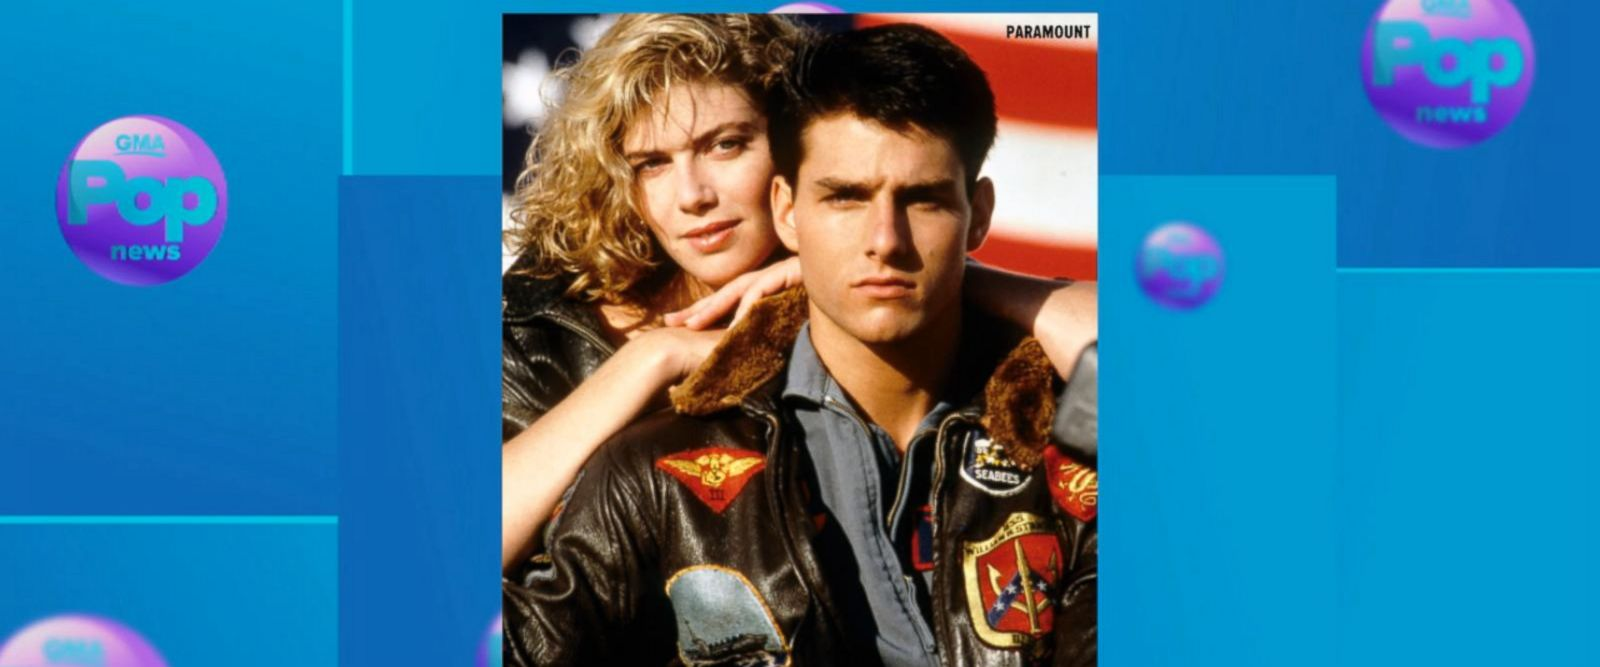 VIDEO: Tom Cruise confirms his return to the 'Danger Zone' in 'Top Gun' sequel